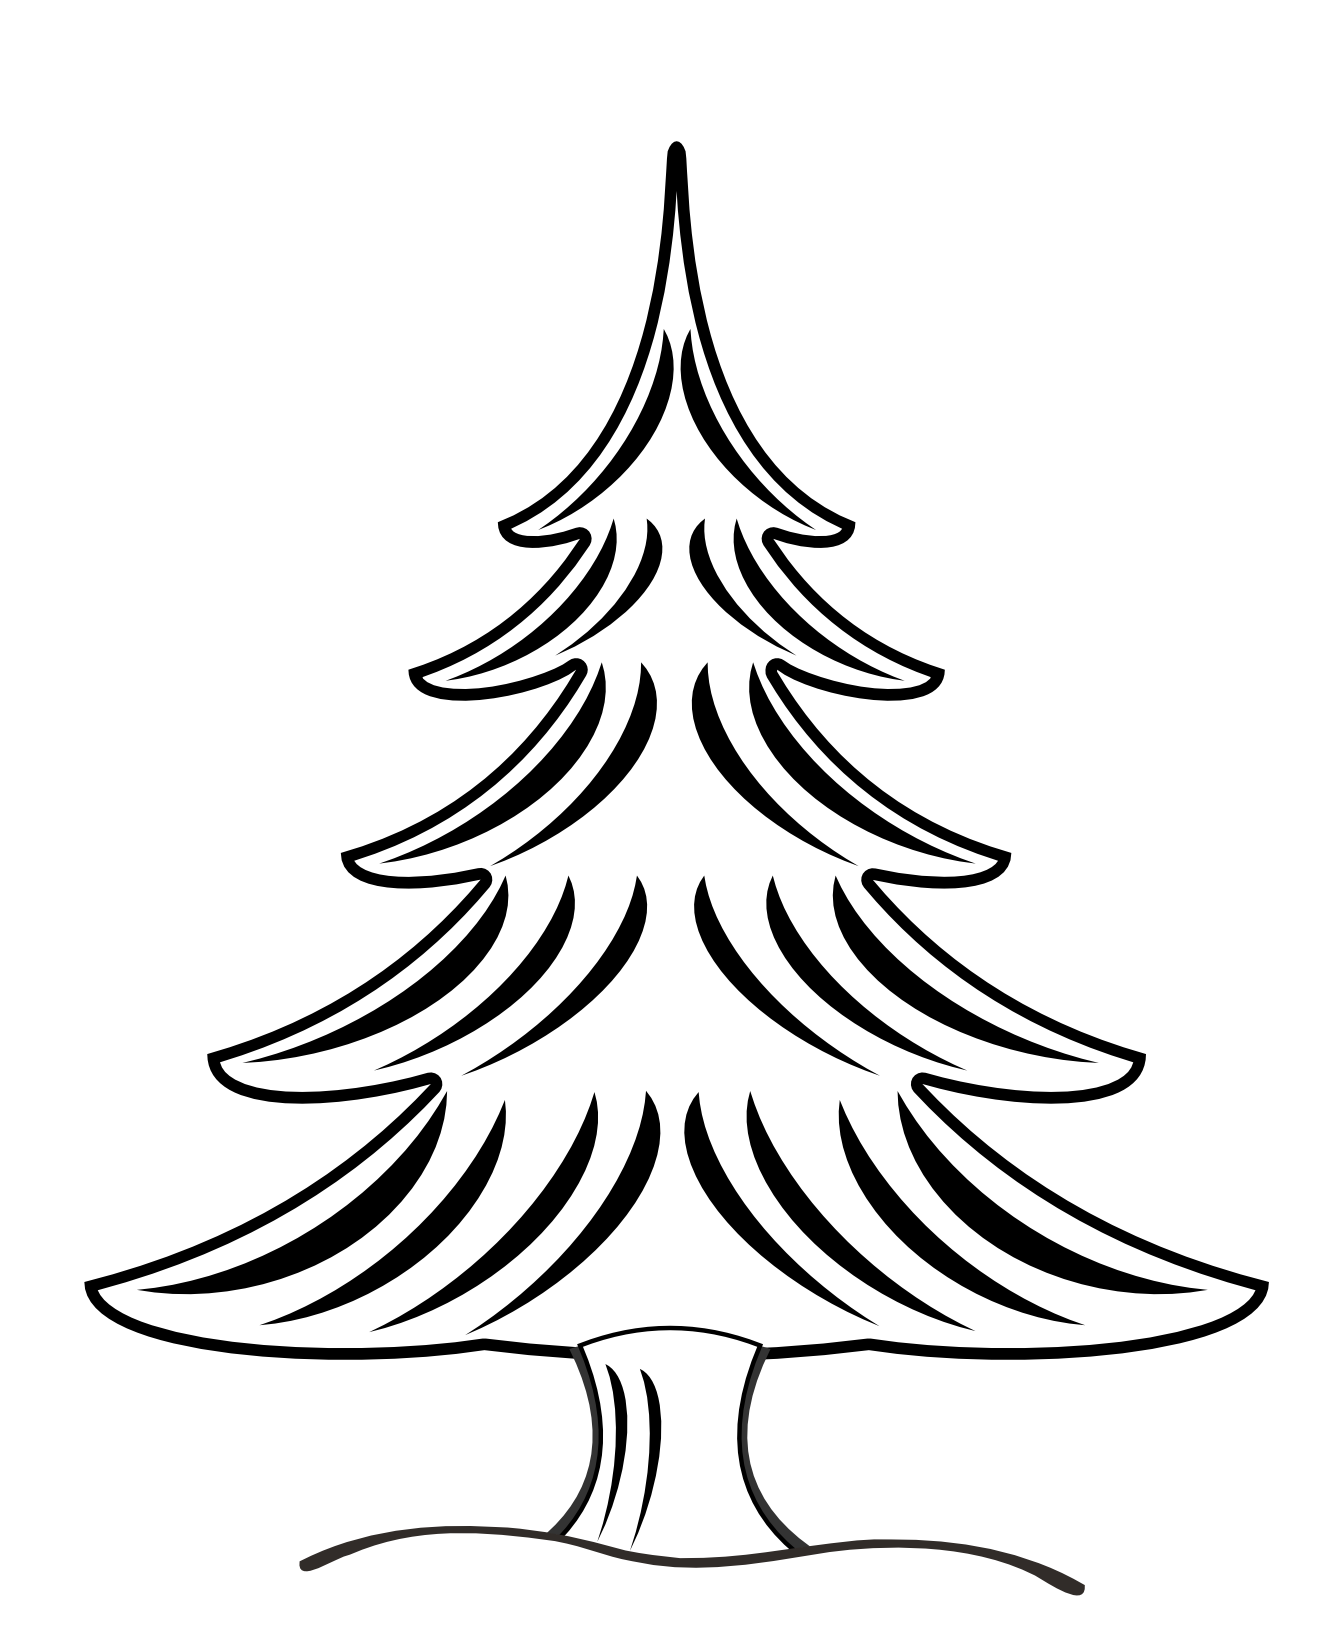 Clip Art Christmas Tree Black And White | Clipart Panda ...